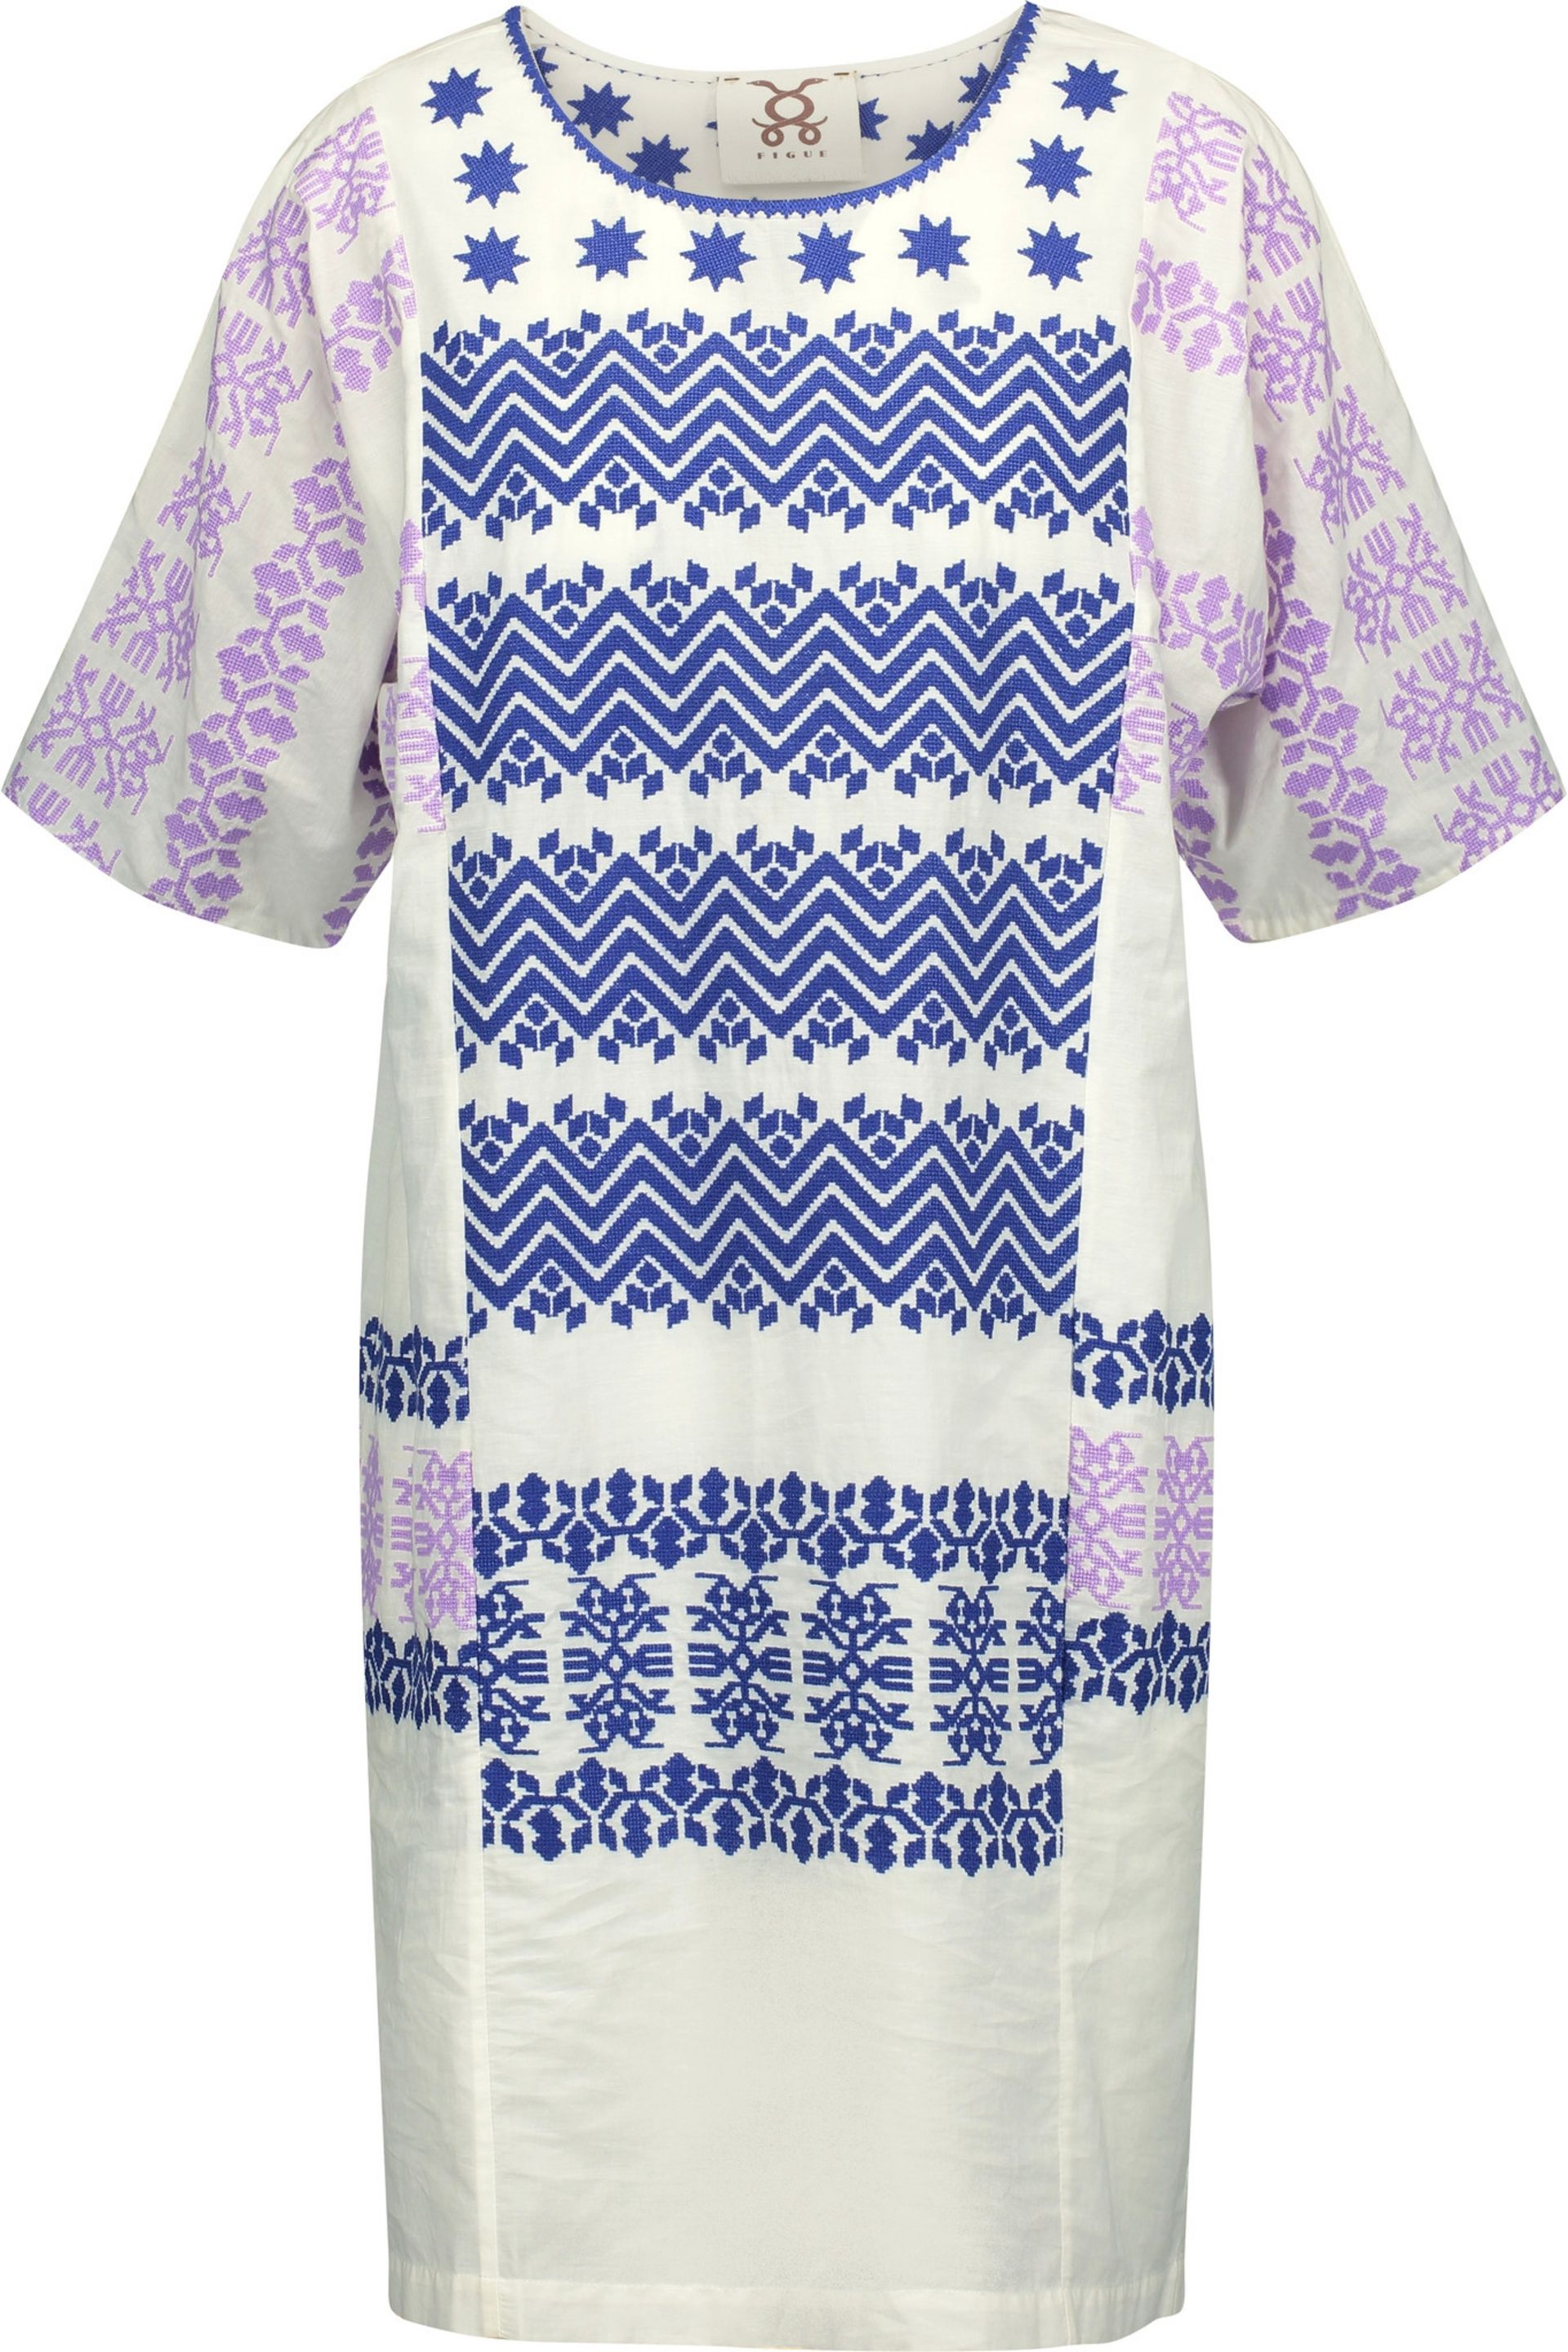 Cheap New Figue Woman Luz Embroidered Cotton-broadcloth Mini Dress White Size XXS Figue Newest Sale Online Outlet Websites Clearance 100% Authentic lkgKv39x5